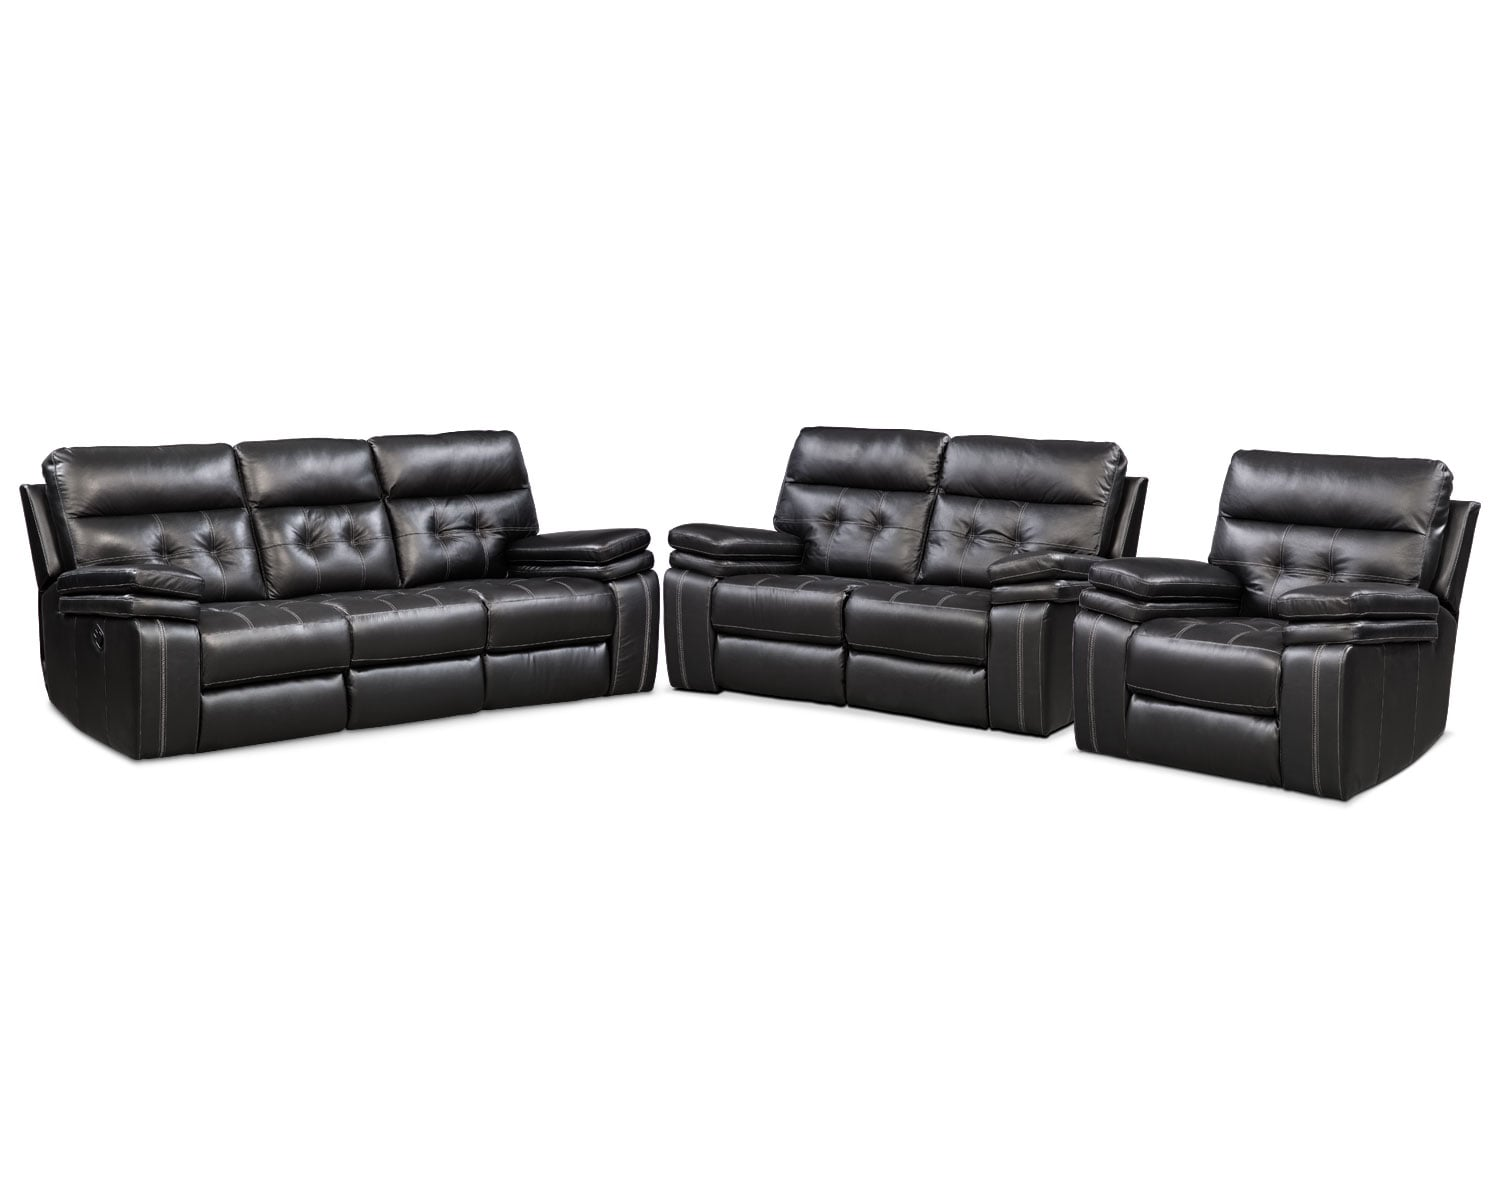 The Brisco Black Manual Reclining Collection